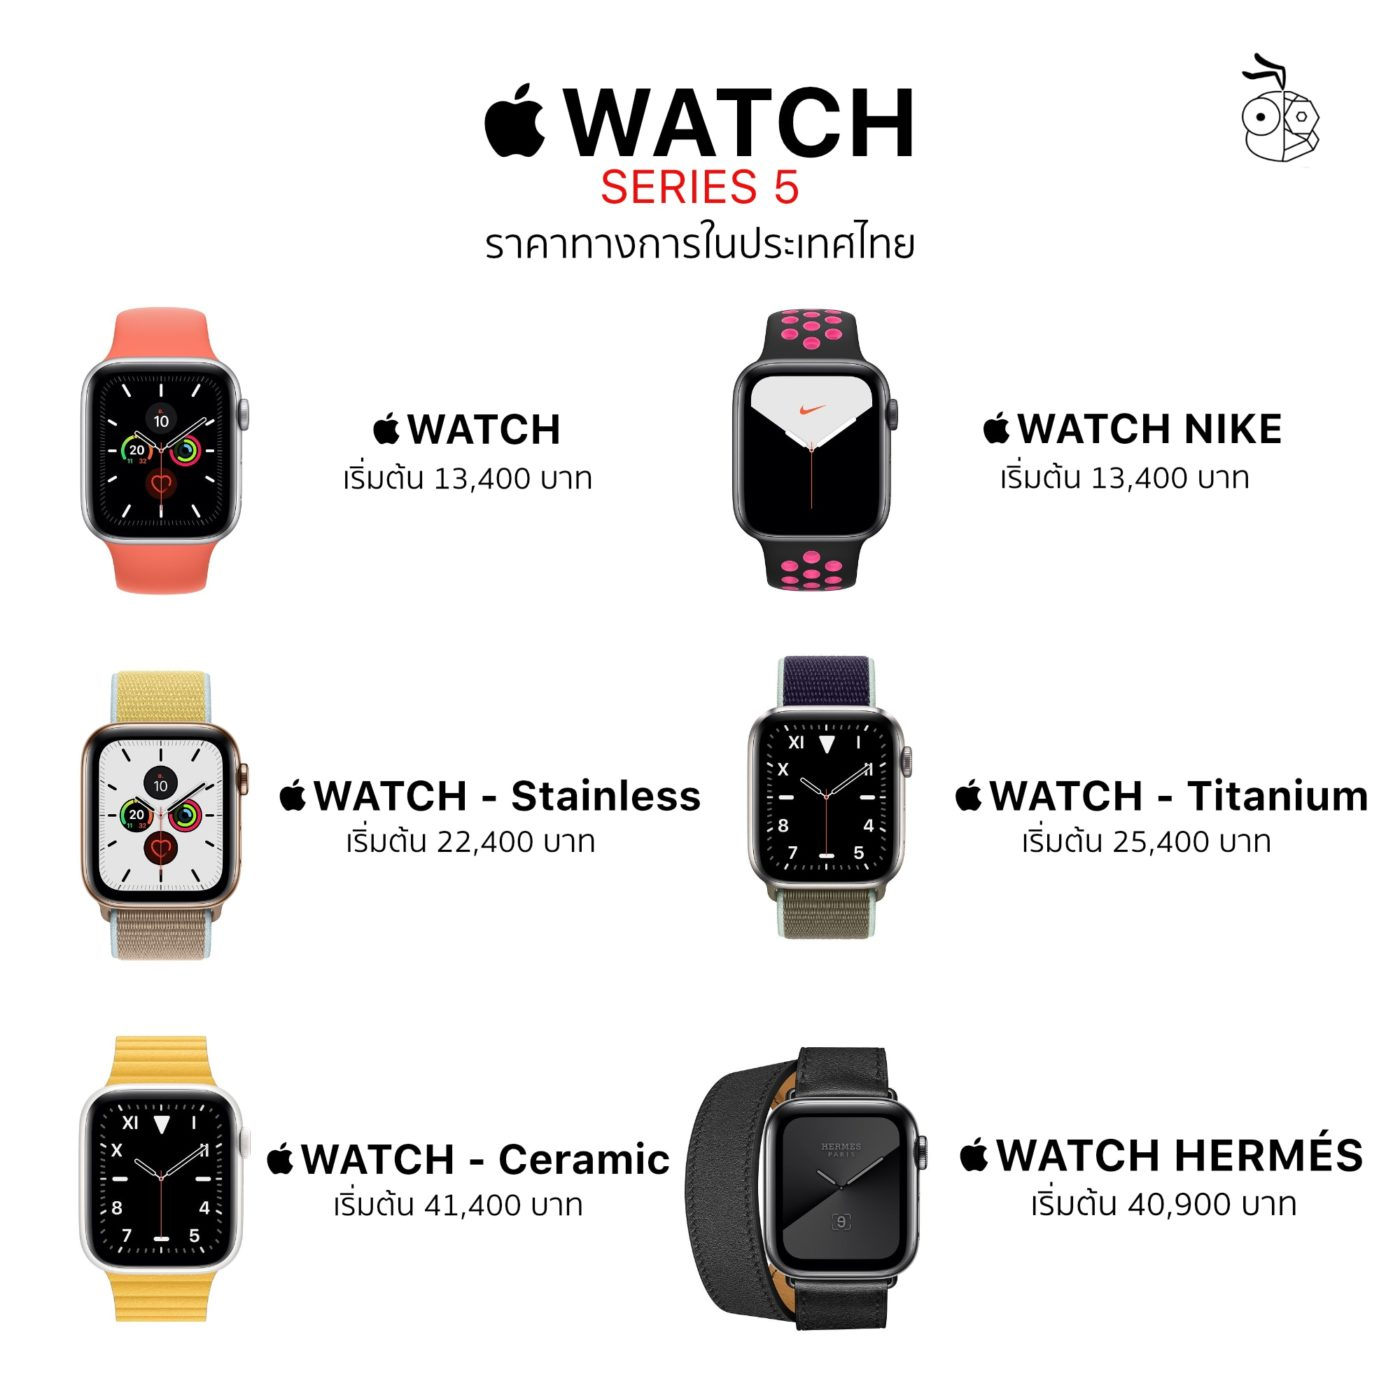 Apple Watch S5 Pricing